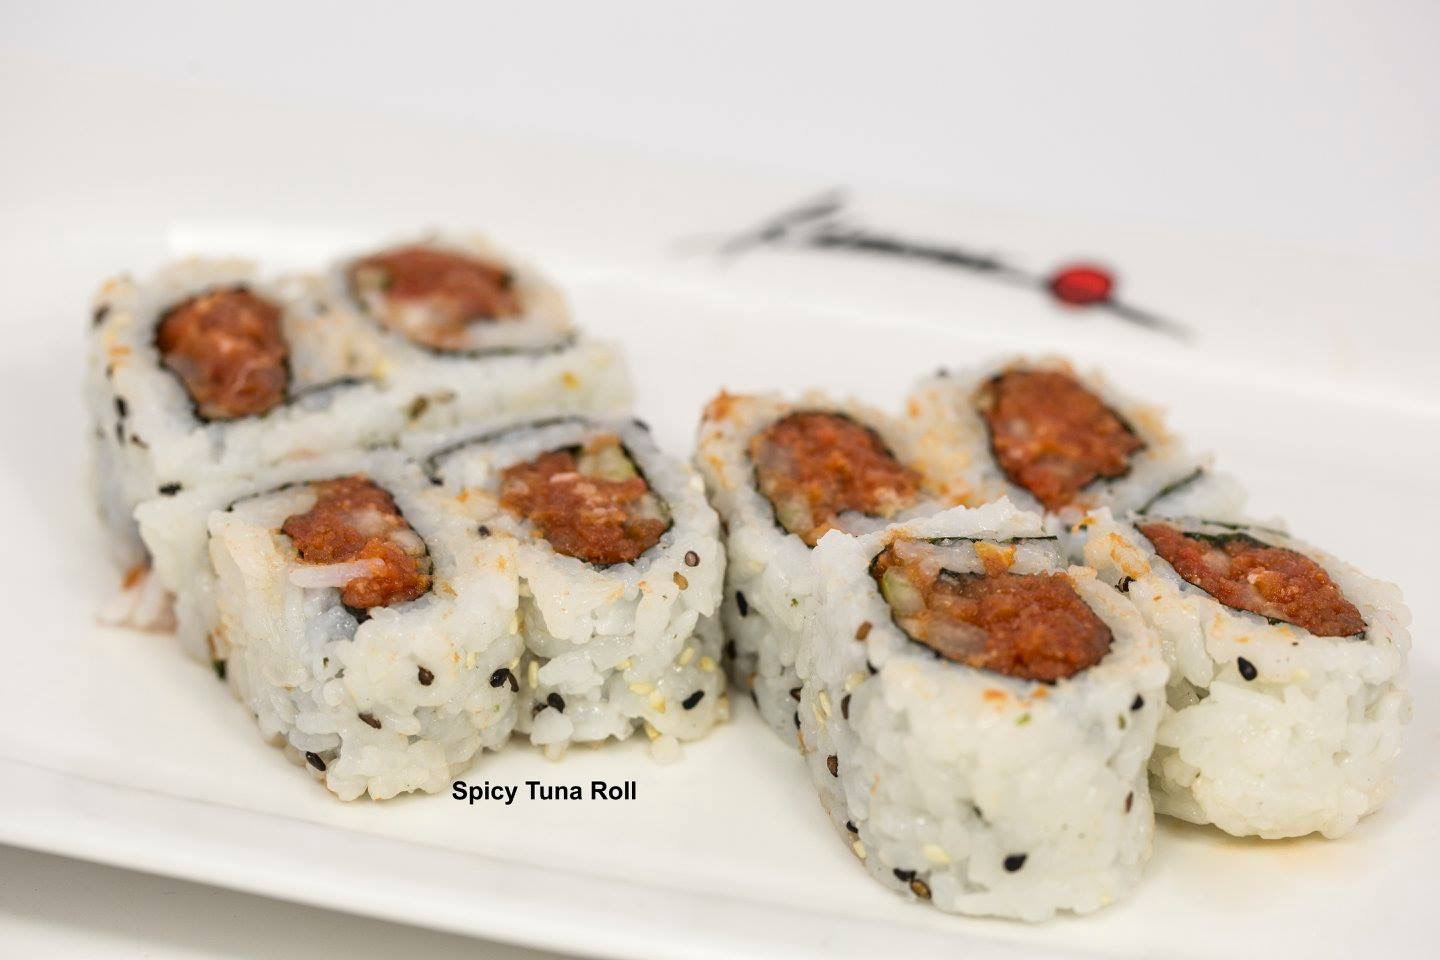 Spicy Tuna Roll